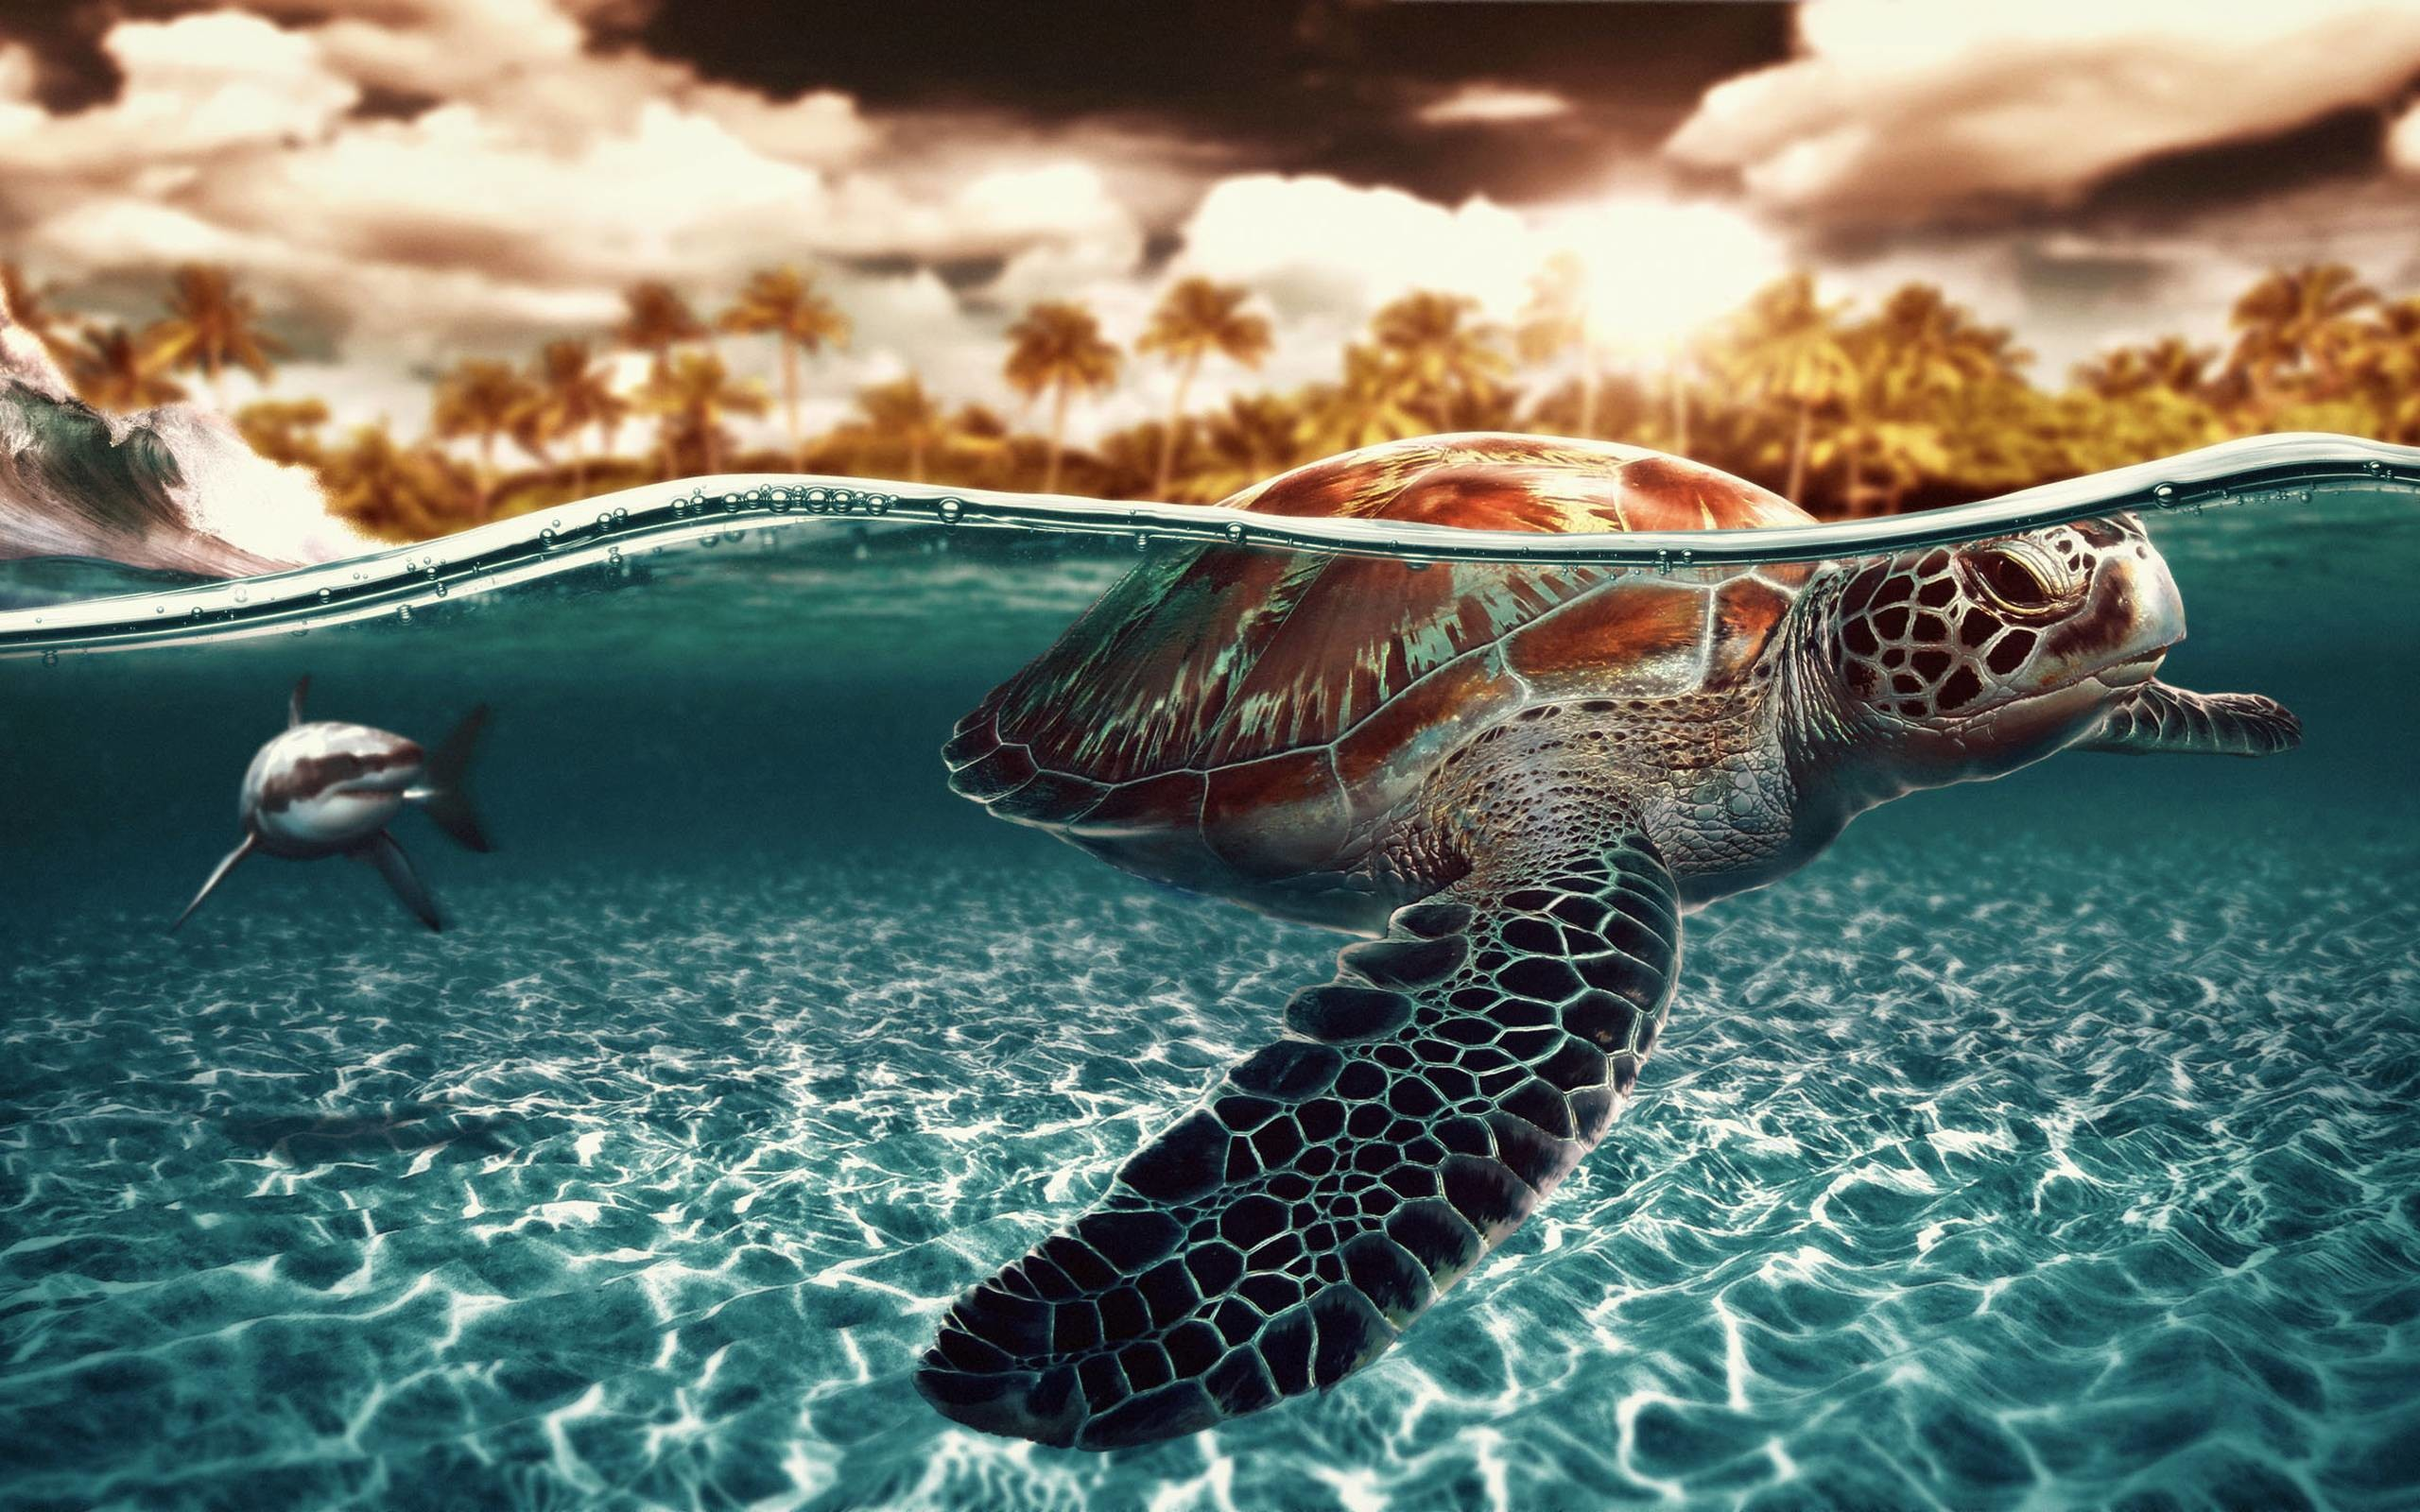 2560x1600 Wallpapers For > Nemo Sea Turtle Wallpaper